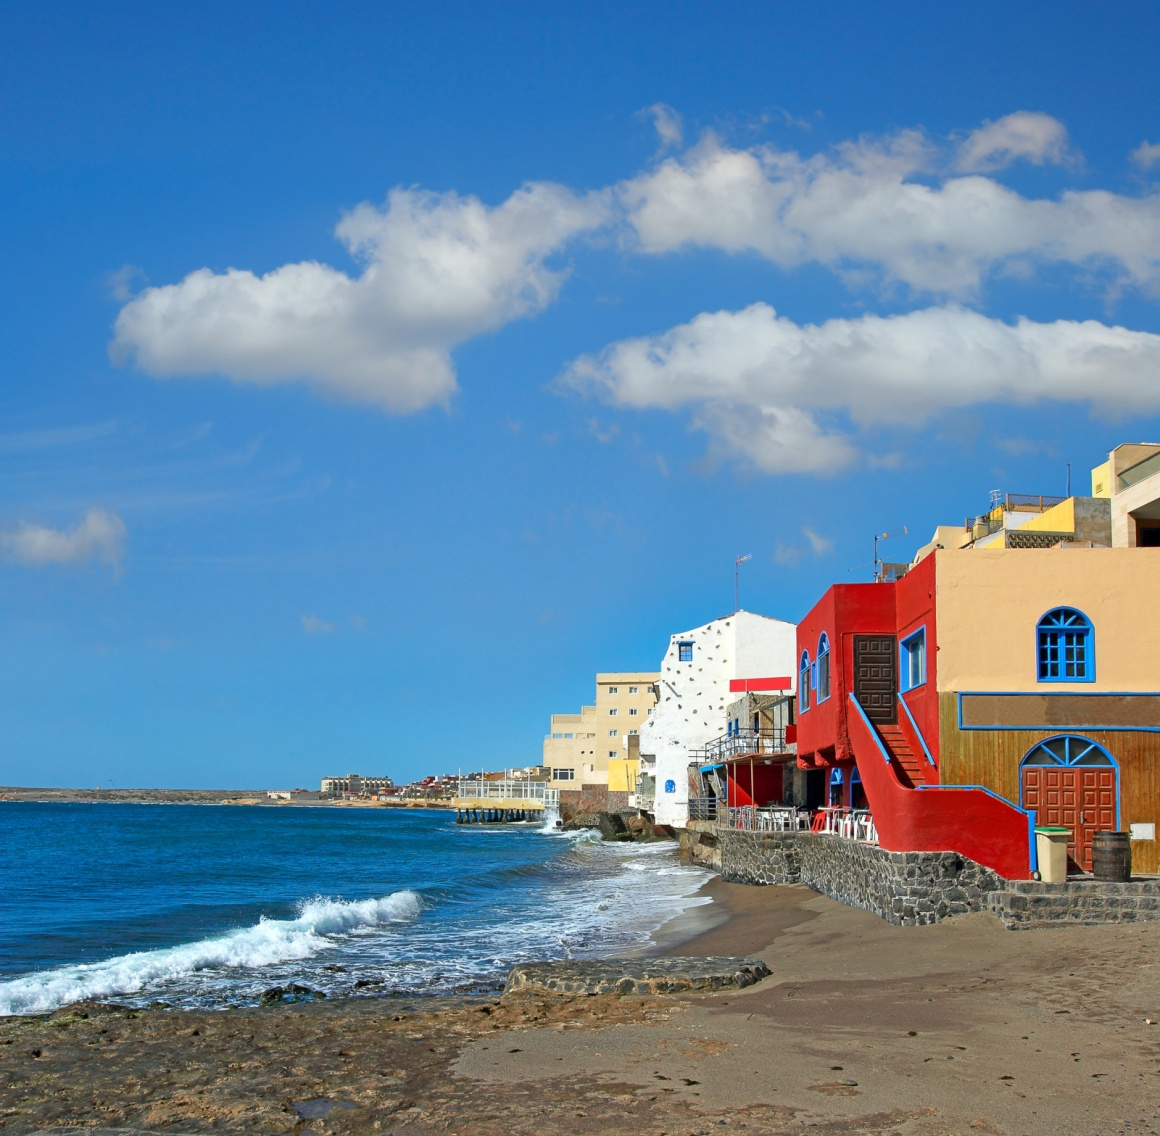 El Mdano the bohemian resort of Tenerife